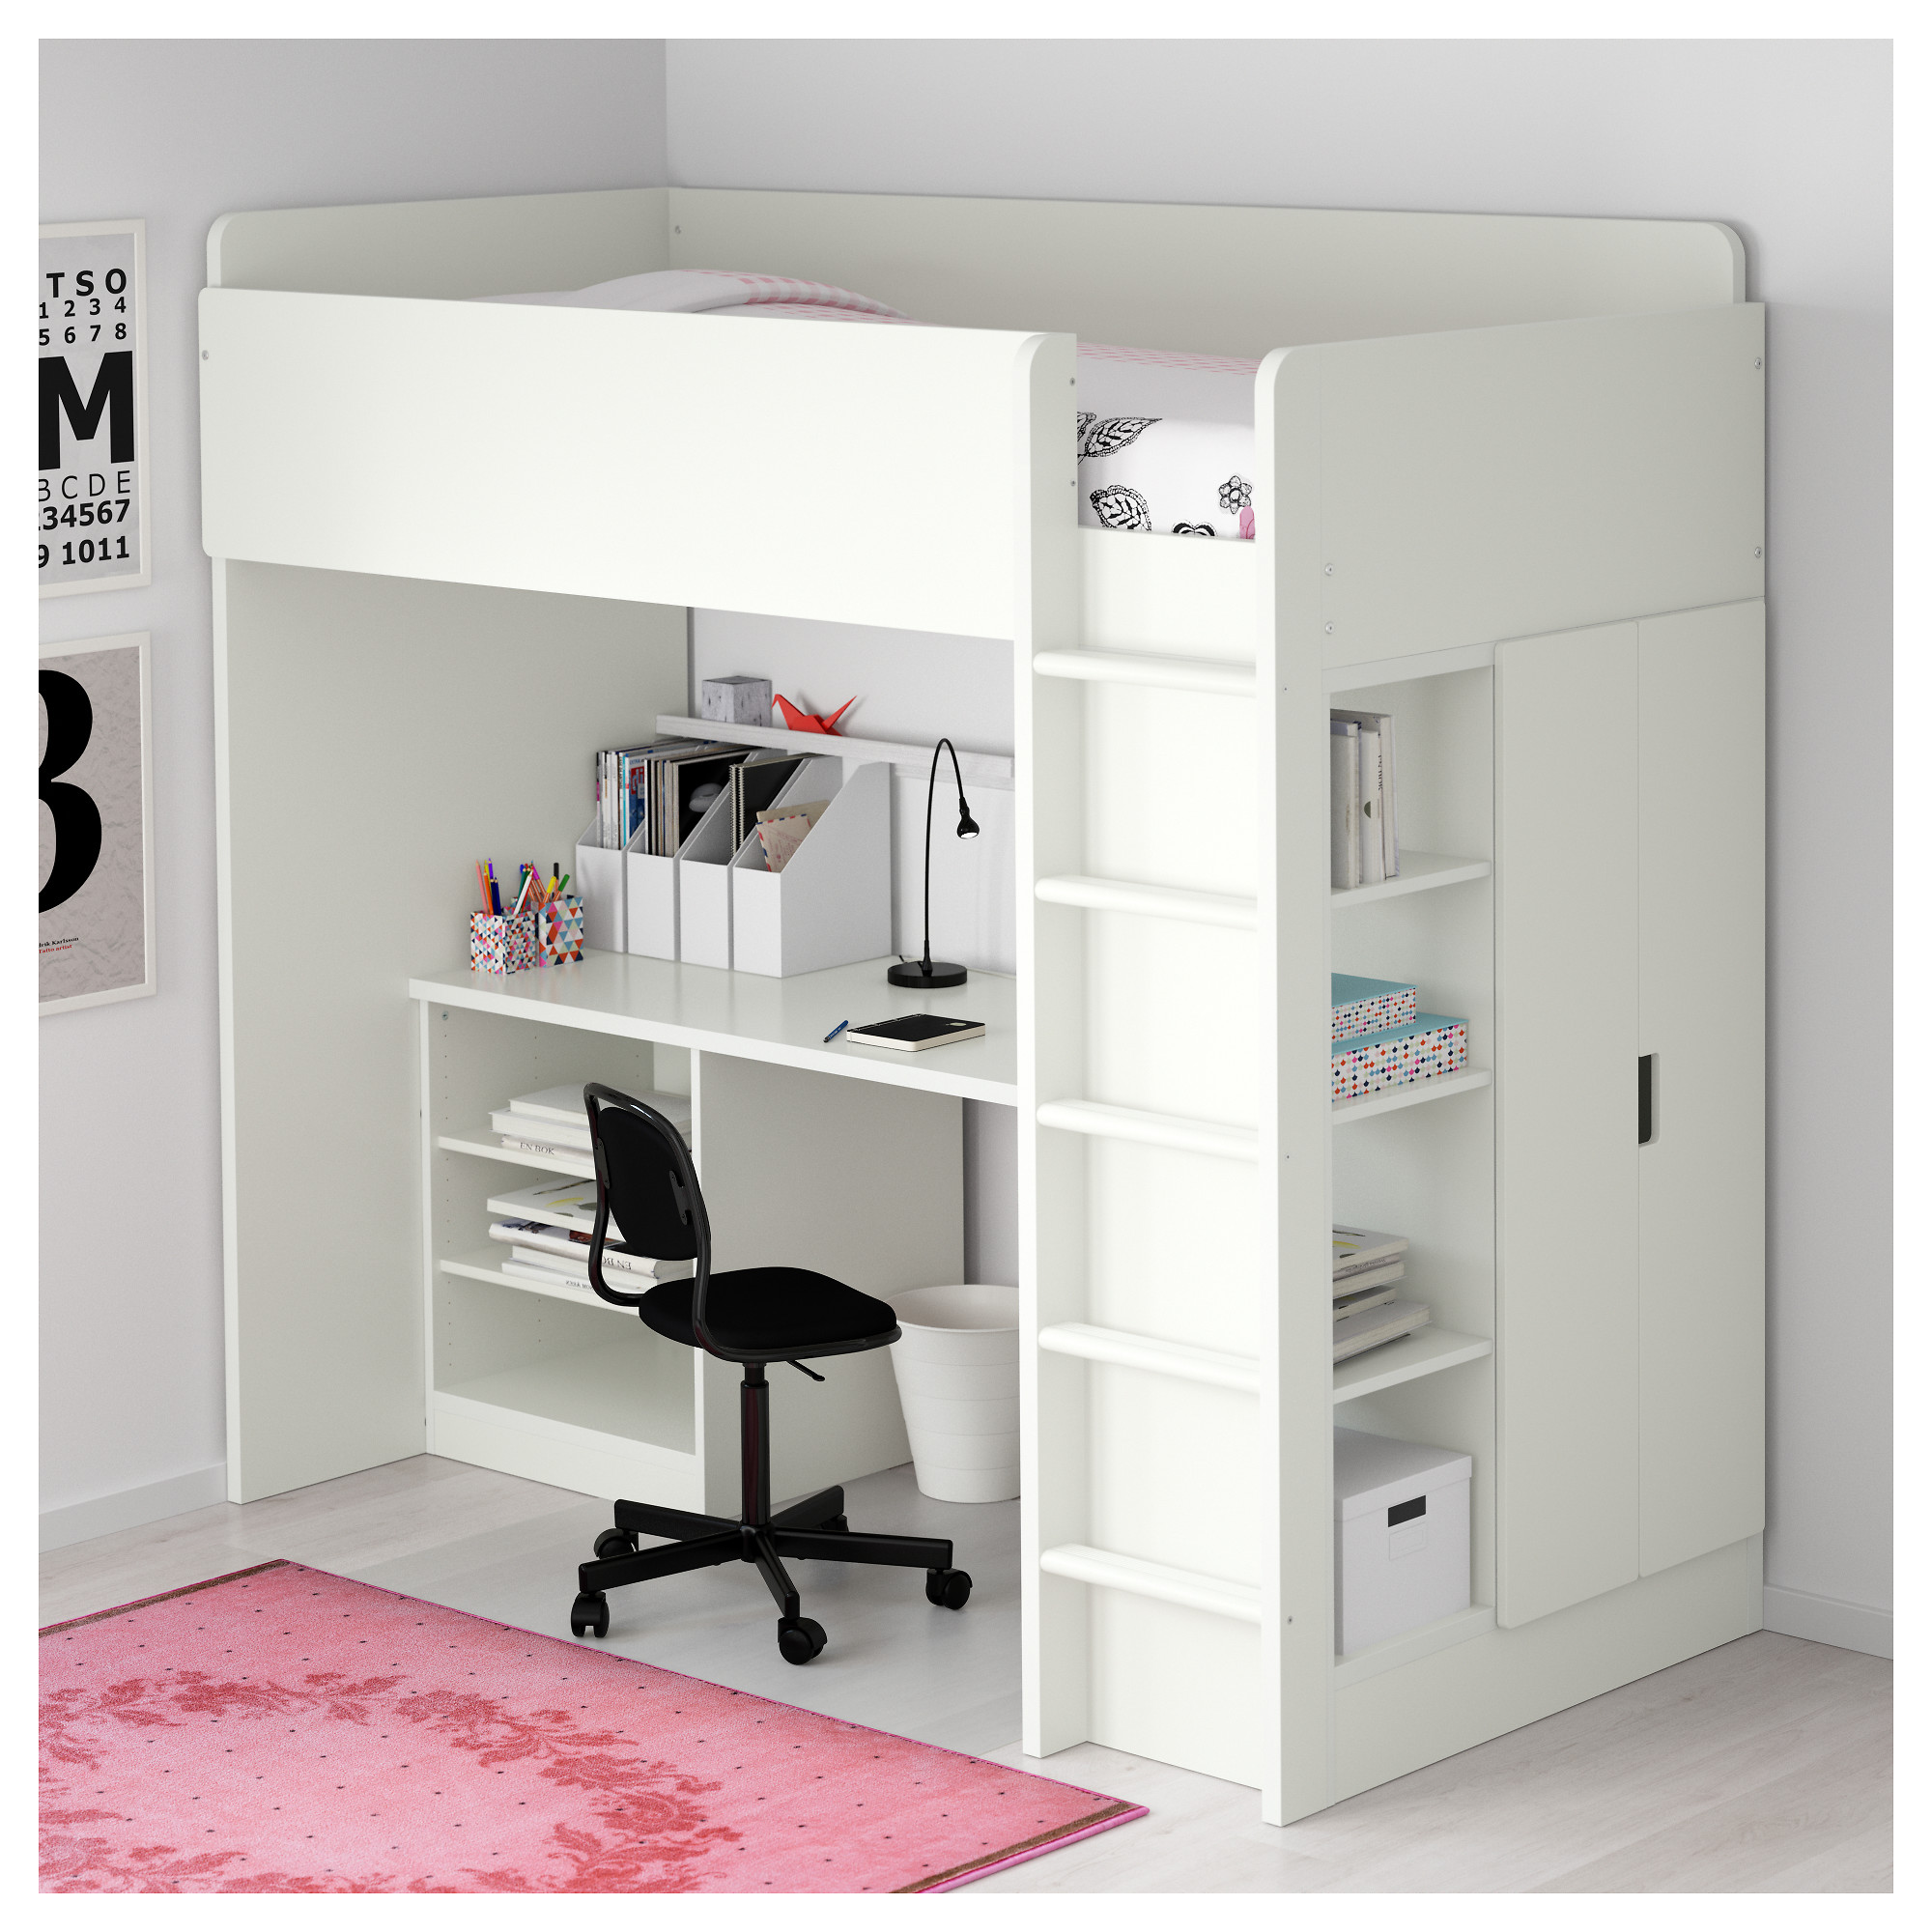 Hochbett ikea tromsö  STUVA Loft bed with 2 shelves/2 doors - white/pink - IKEA